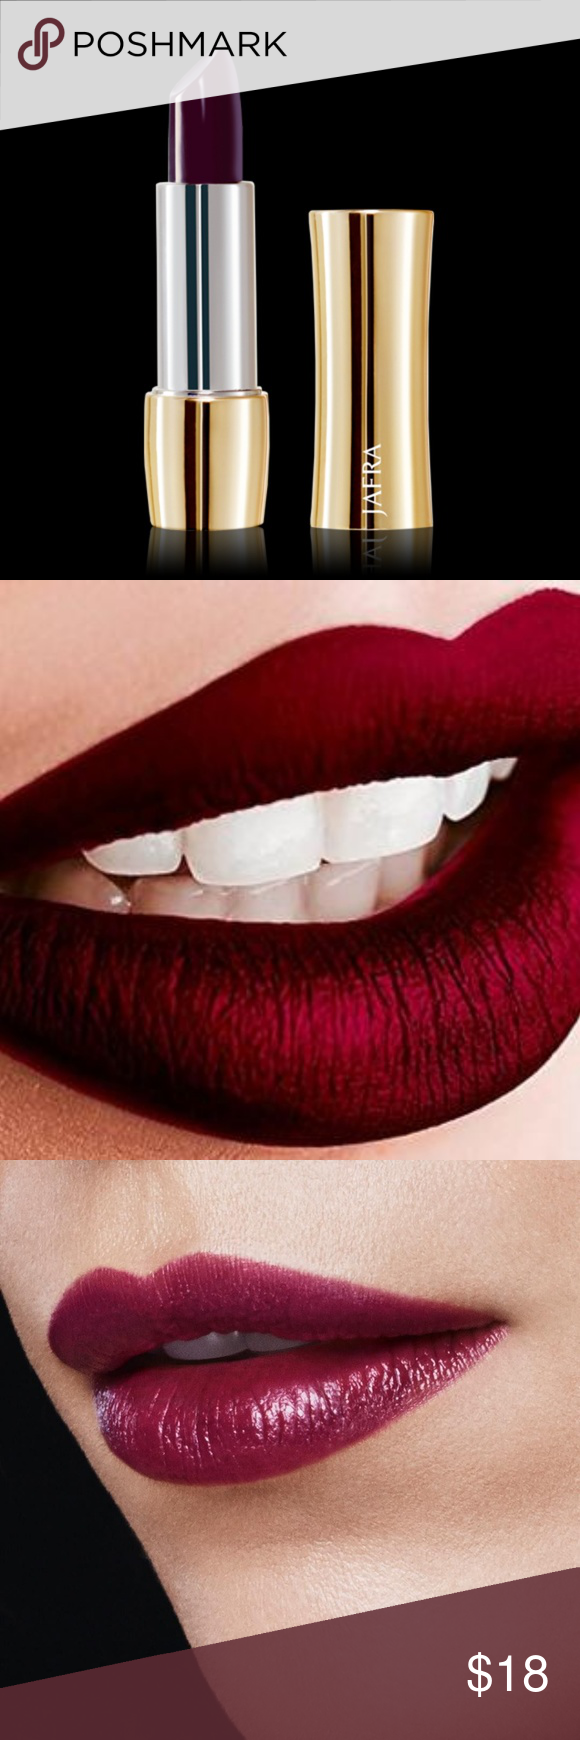 NEW JAFRA ROYAL Lipstick Spiced Plum Experience a